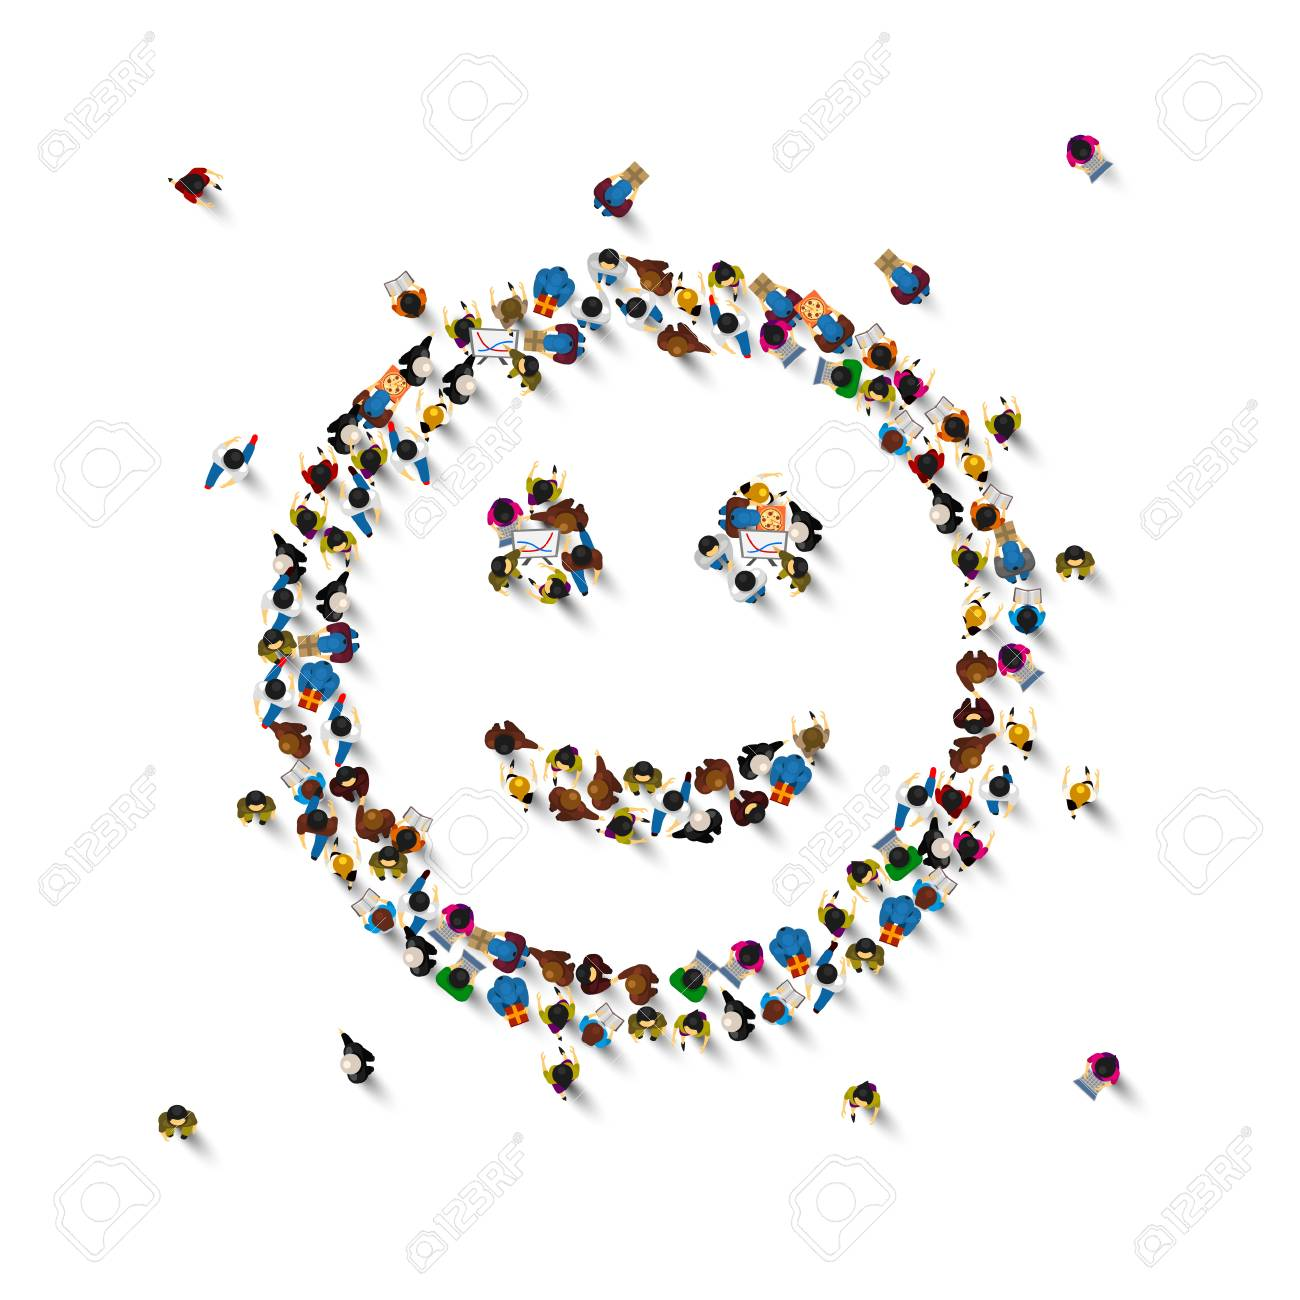 Many people sign emoji on the white background. Vector illustration - 128489051